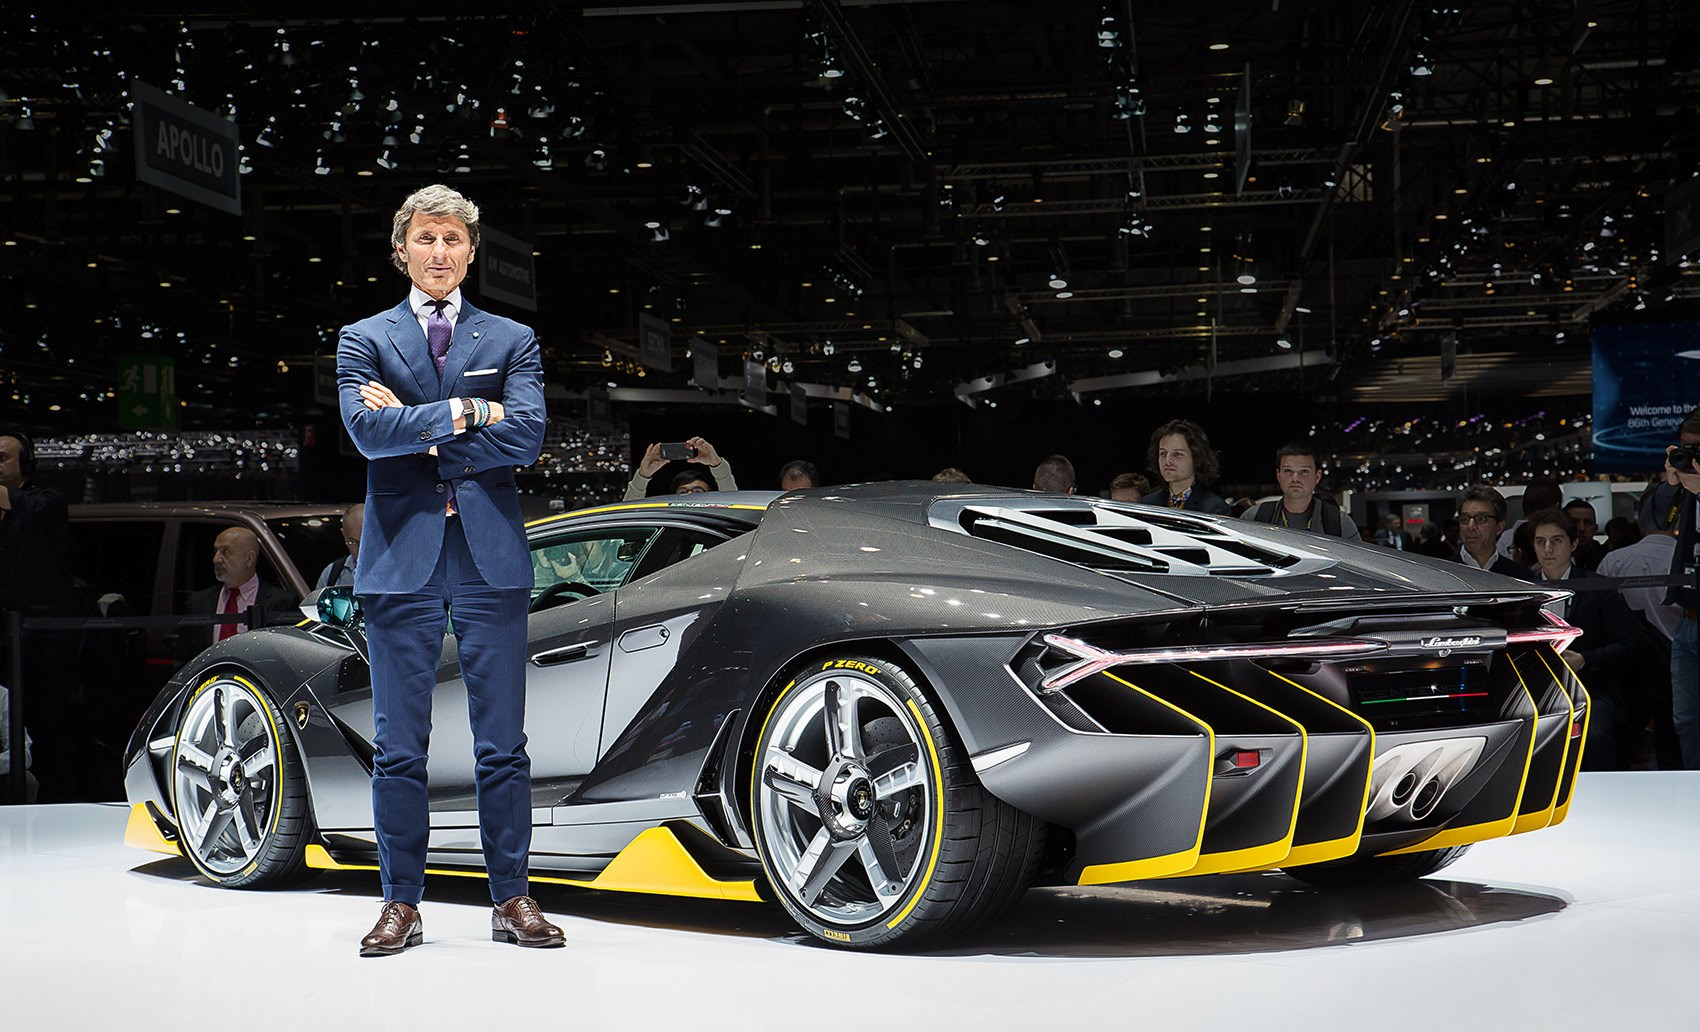 Winkelmann S Parting Gift The Lamborghini Centenario Car April